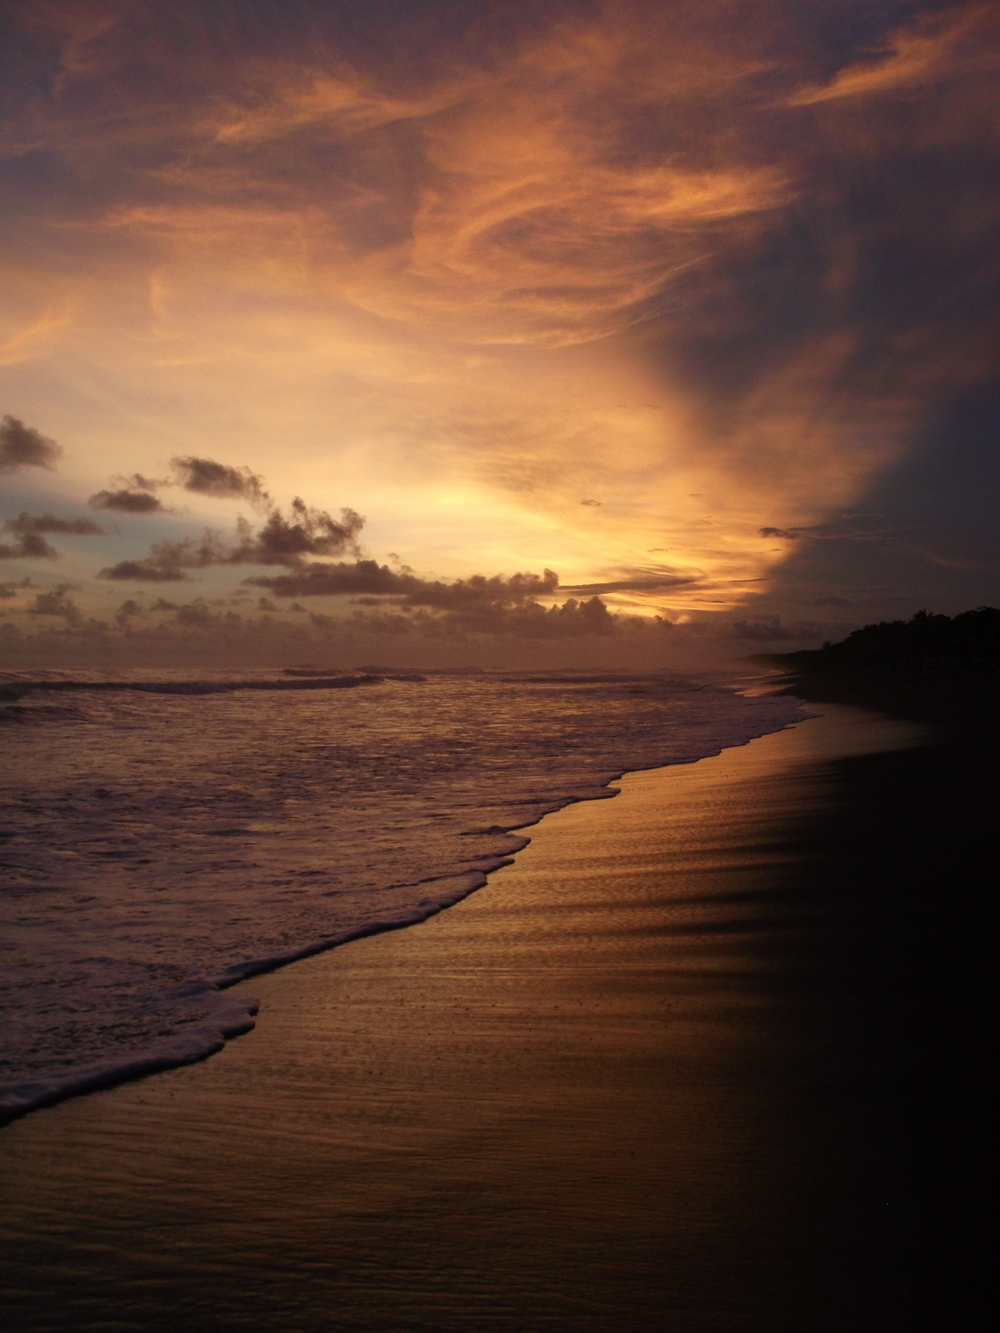 Studying abroad could lead you here (sunset on a beach in Costa Rica). Worth a little extra work? I think so.